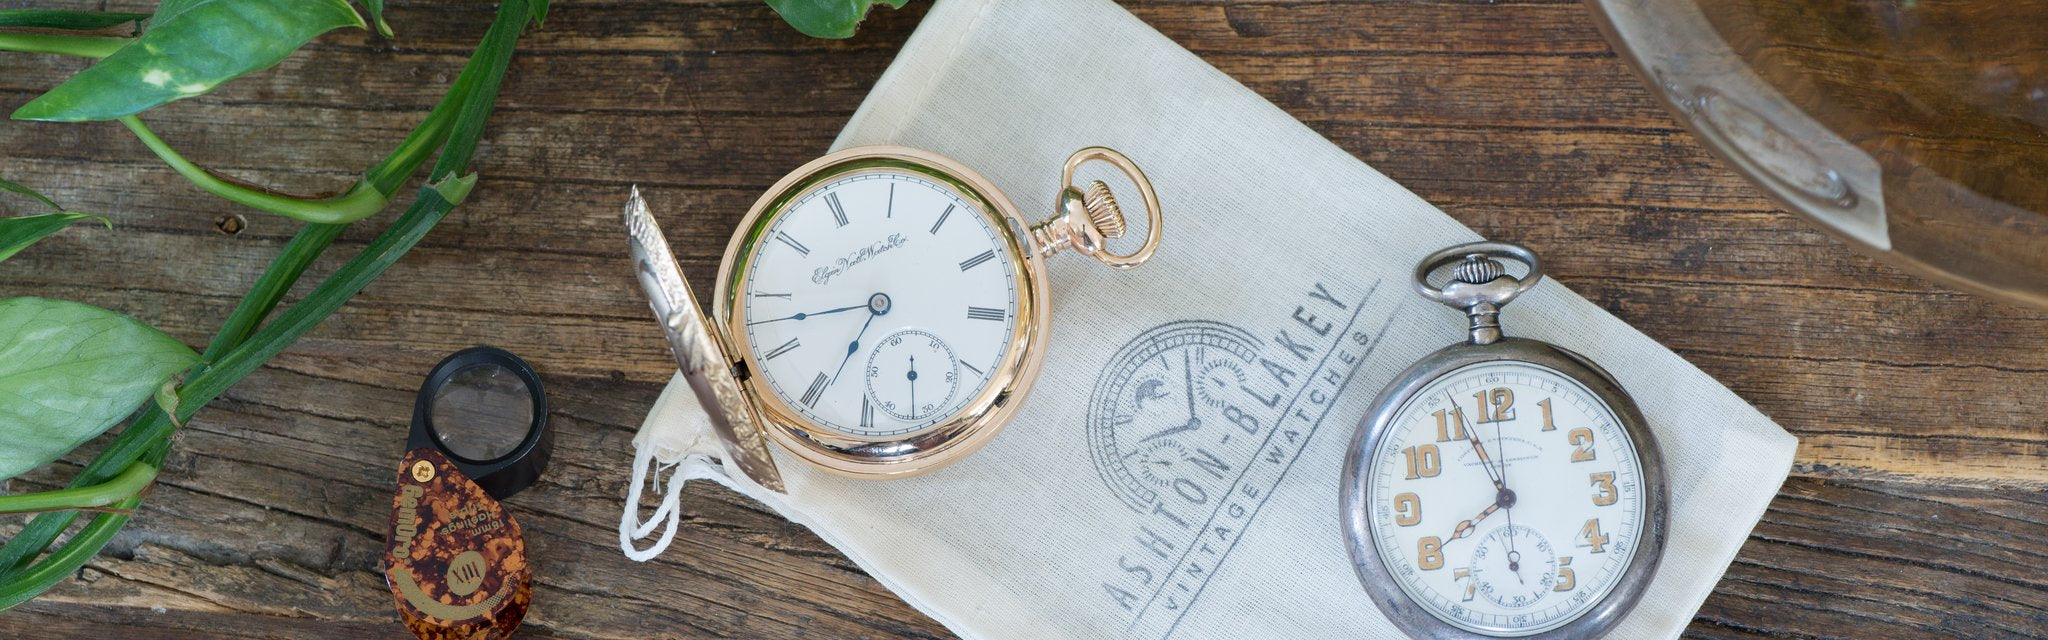 Shop Antique Pocket Watches